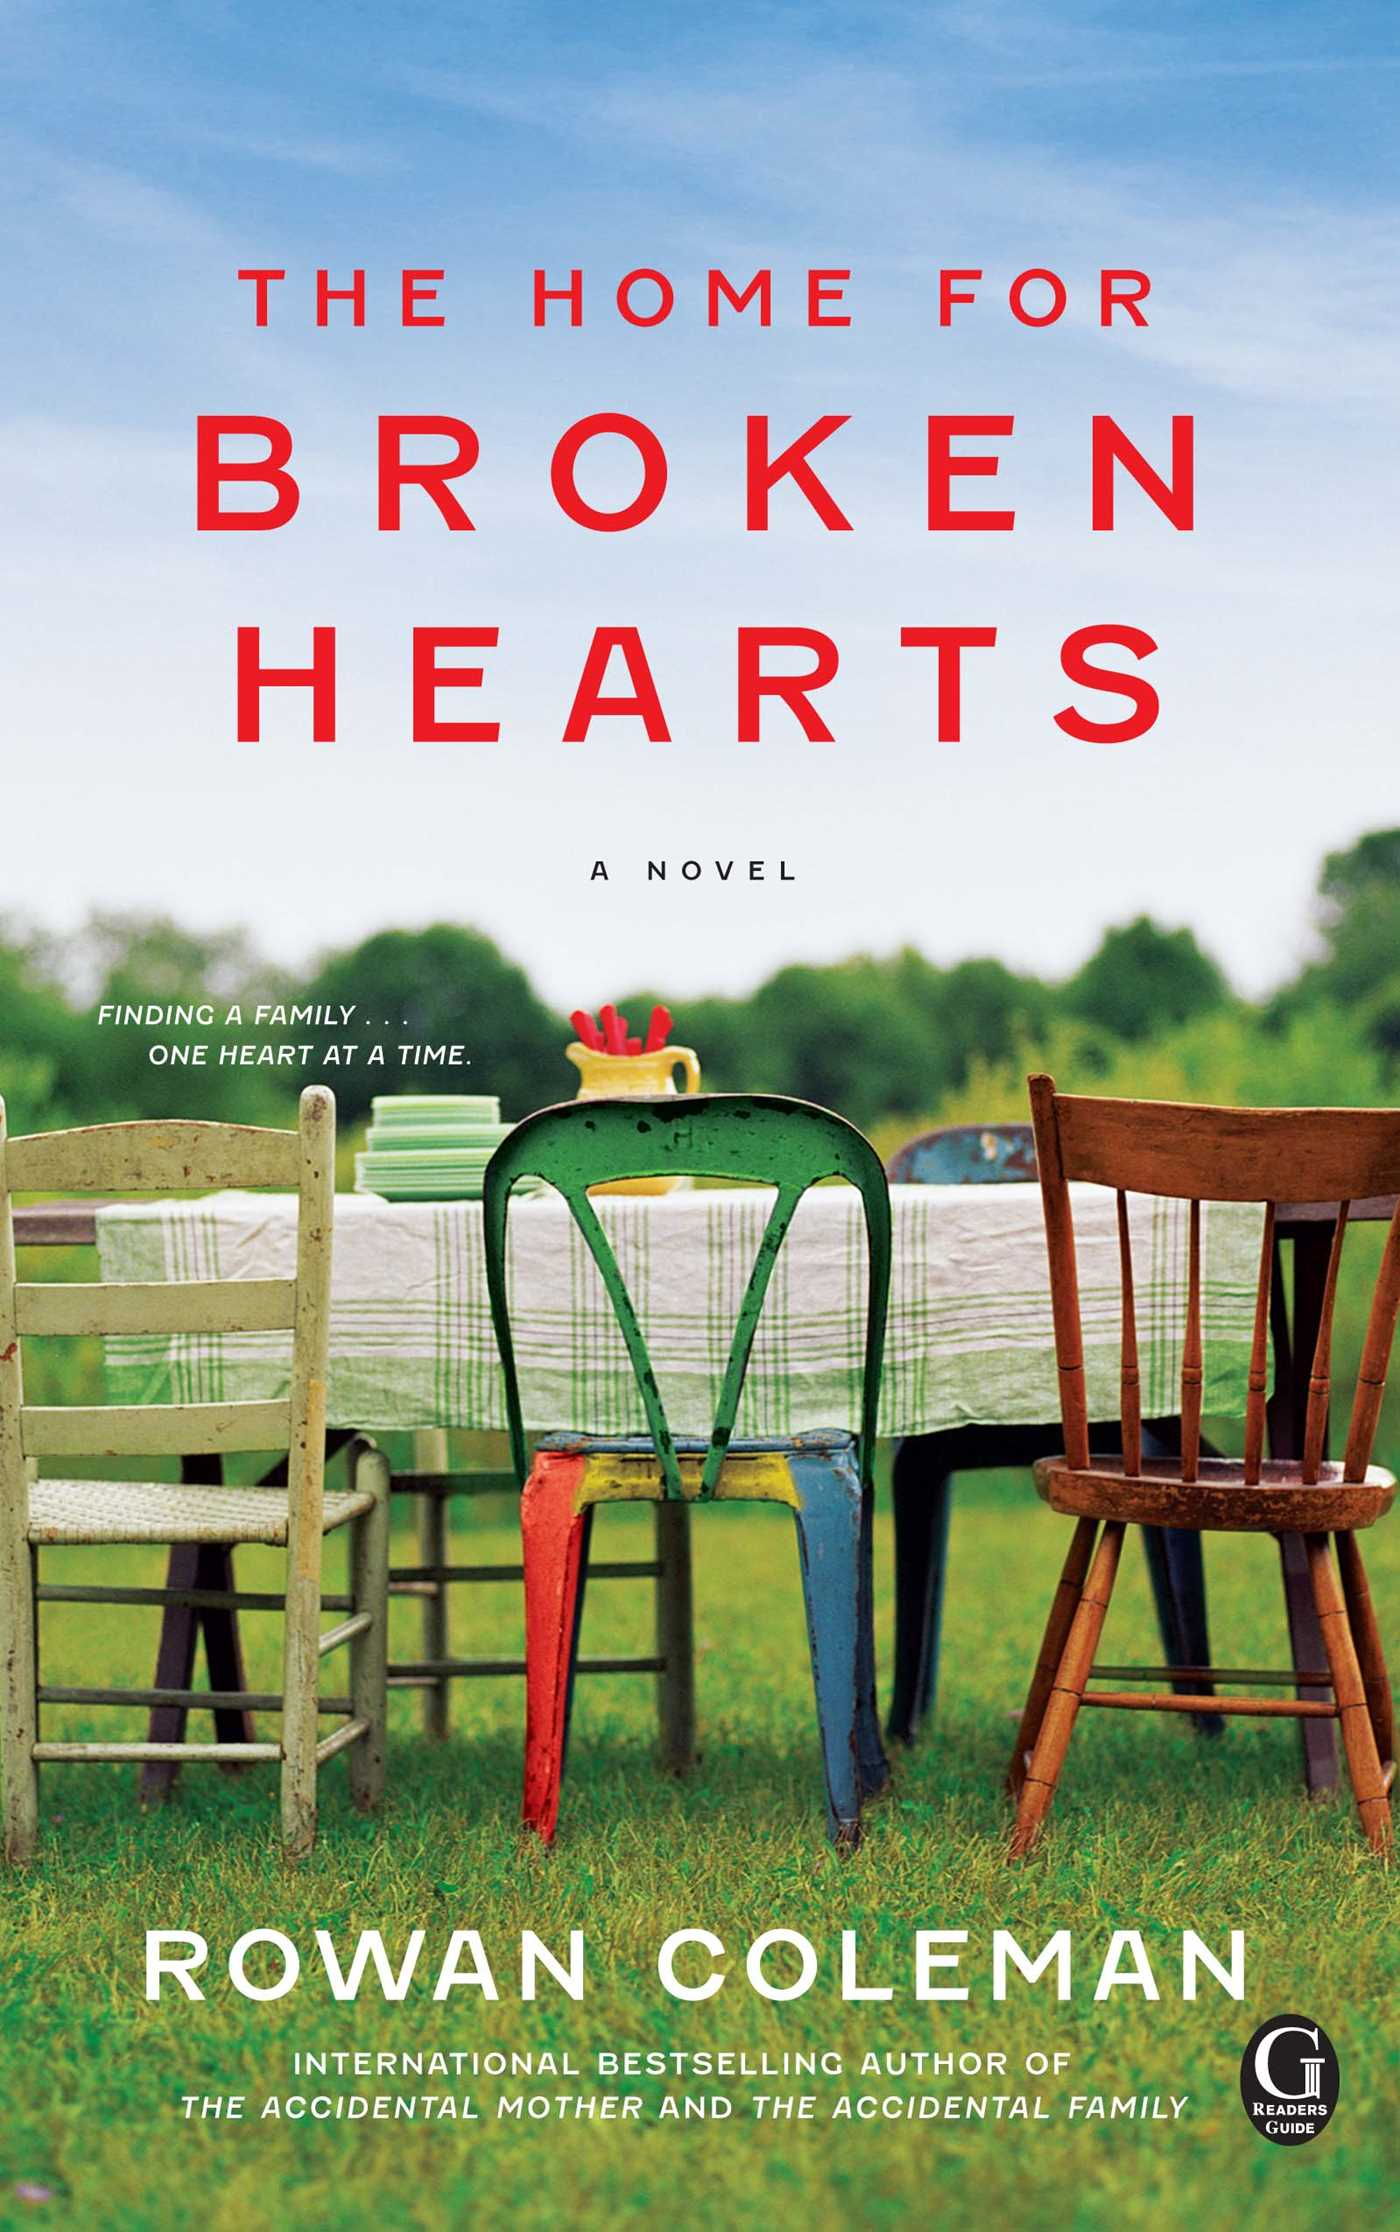 Home-for-broken-hearts-9781439182505_hr